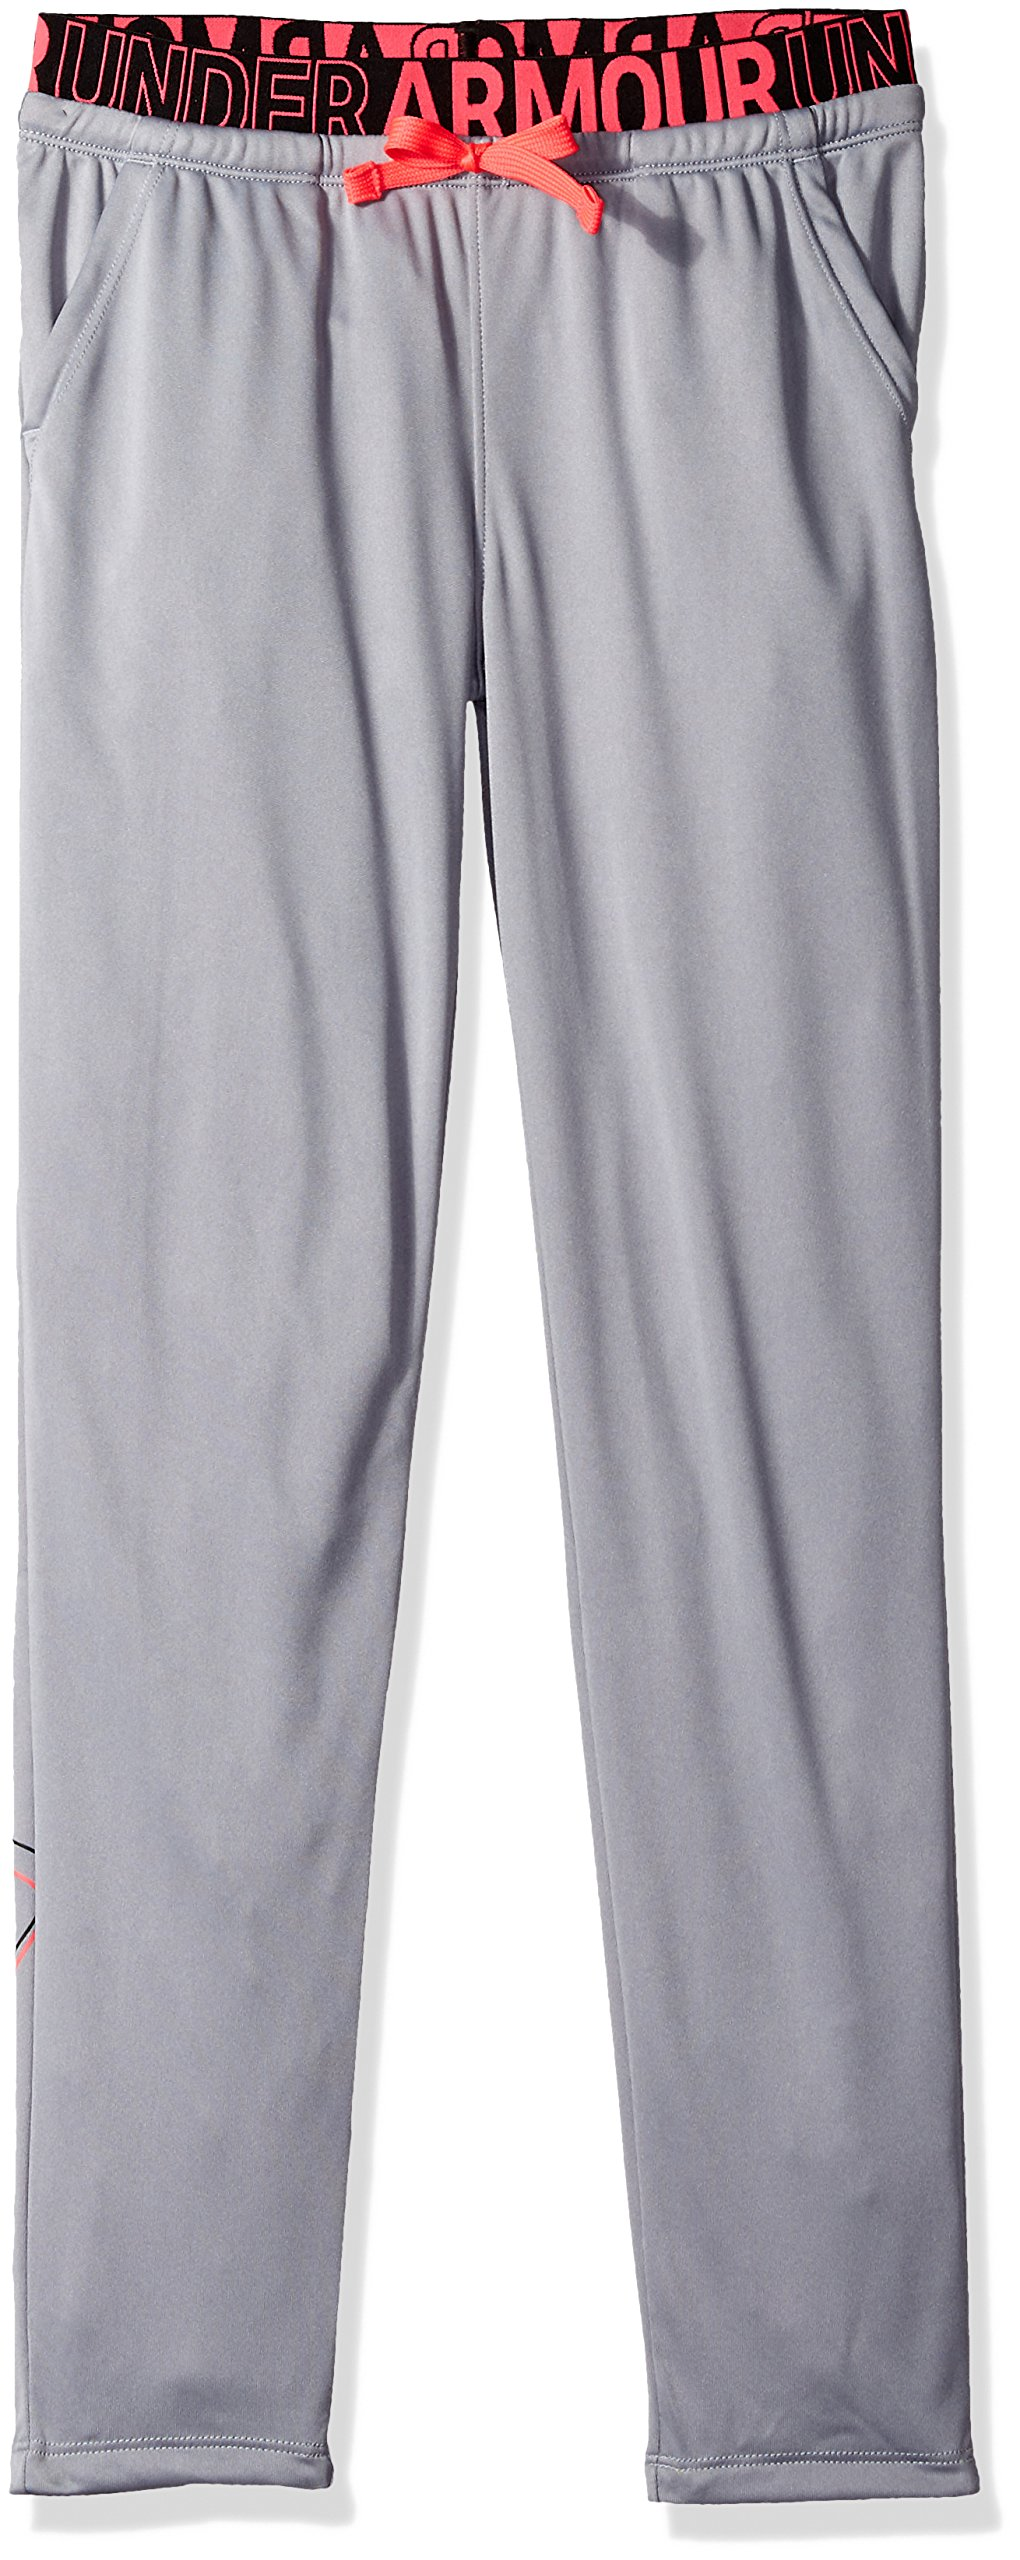 Under Armour Girls Tech Pants, Steel (035)/Black, Youth Small by Under Armour